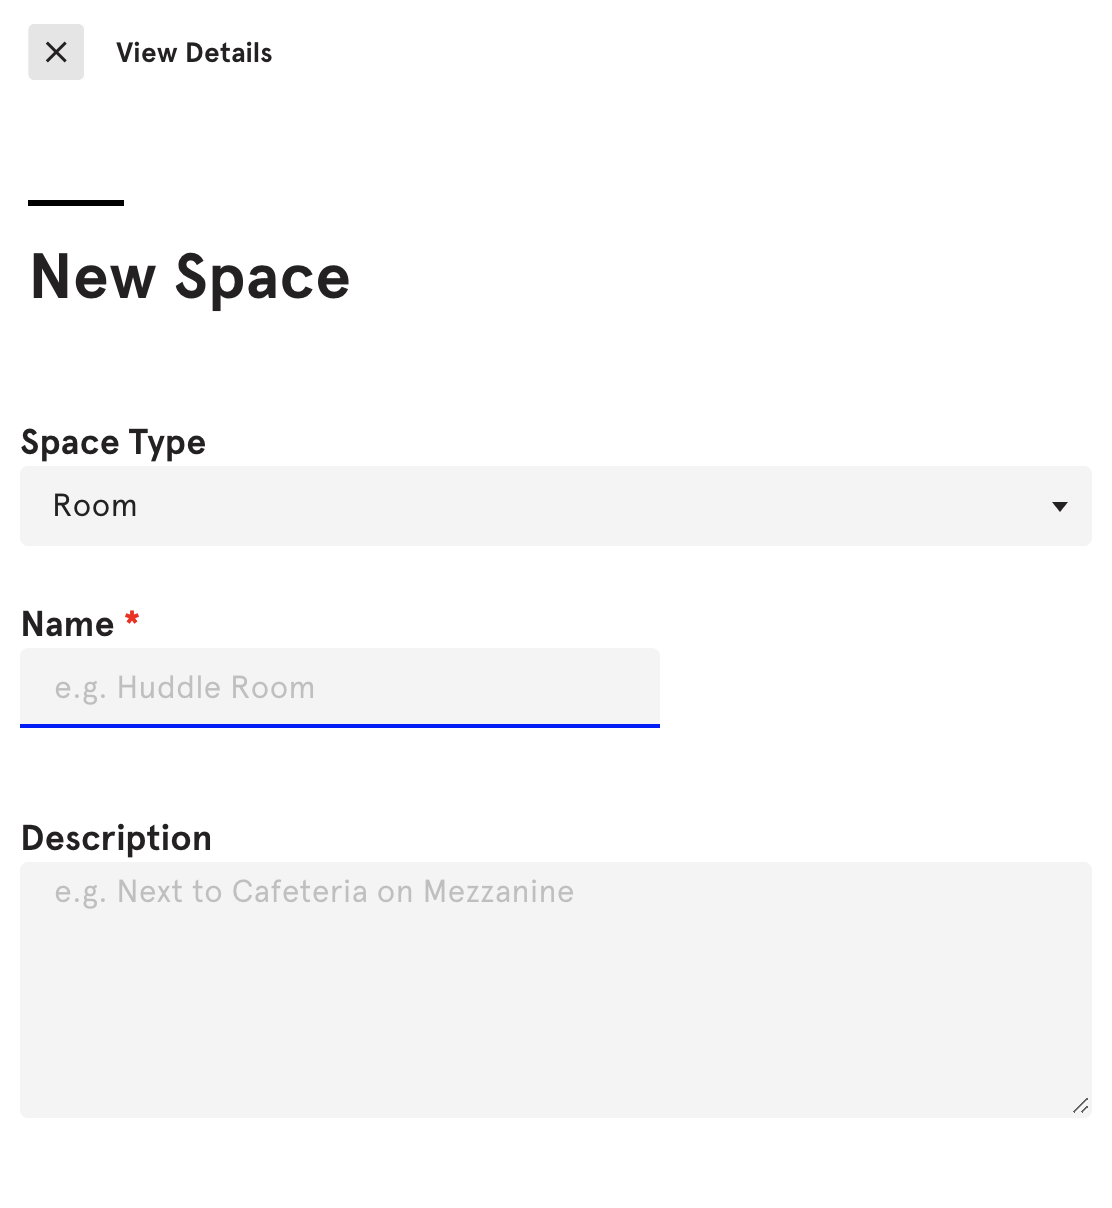 New Space Details Box